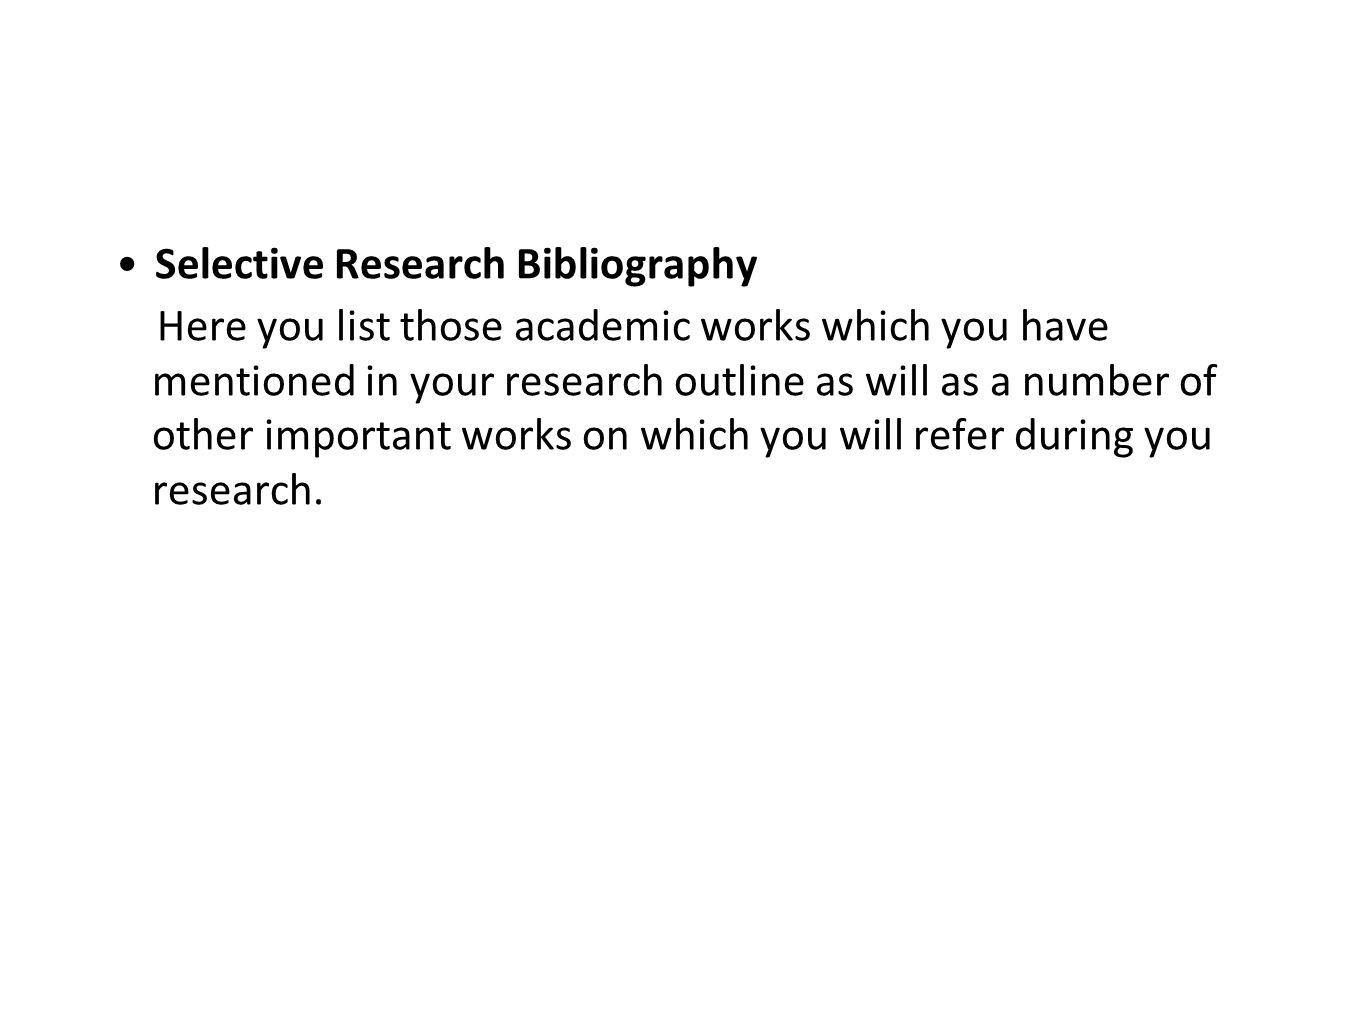 Selective Research Bibliography Here you list those academic works which you have mentioned in your research outline as will as a number of other impo